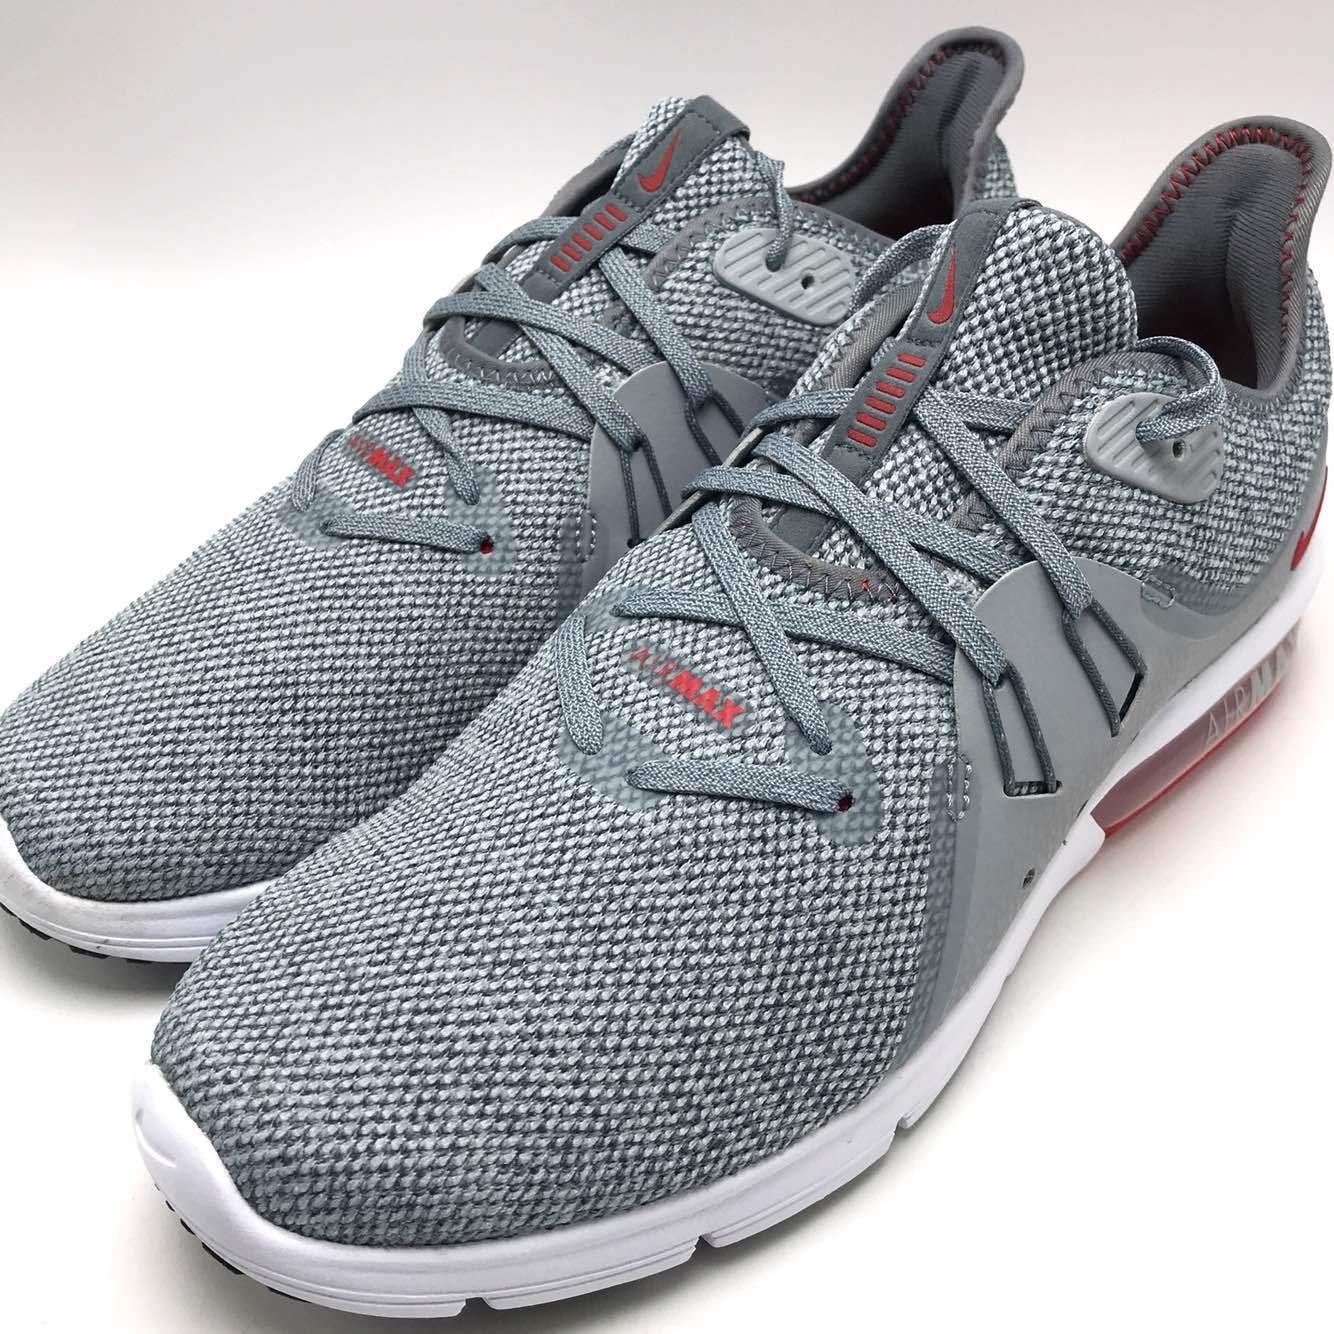 f1ae15918a Men's Nike Air Max Sequent 3 Size 12 Grey Red White Running Shoes ...